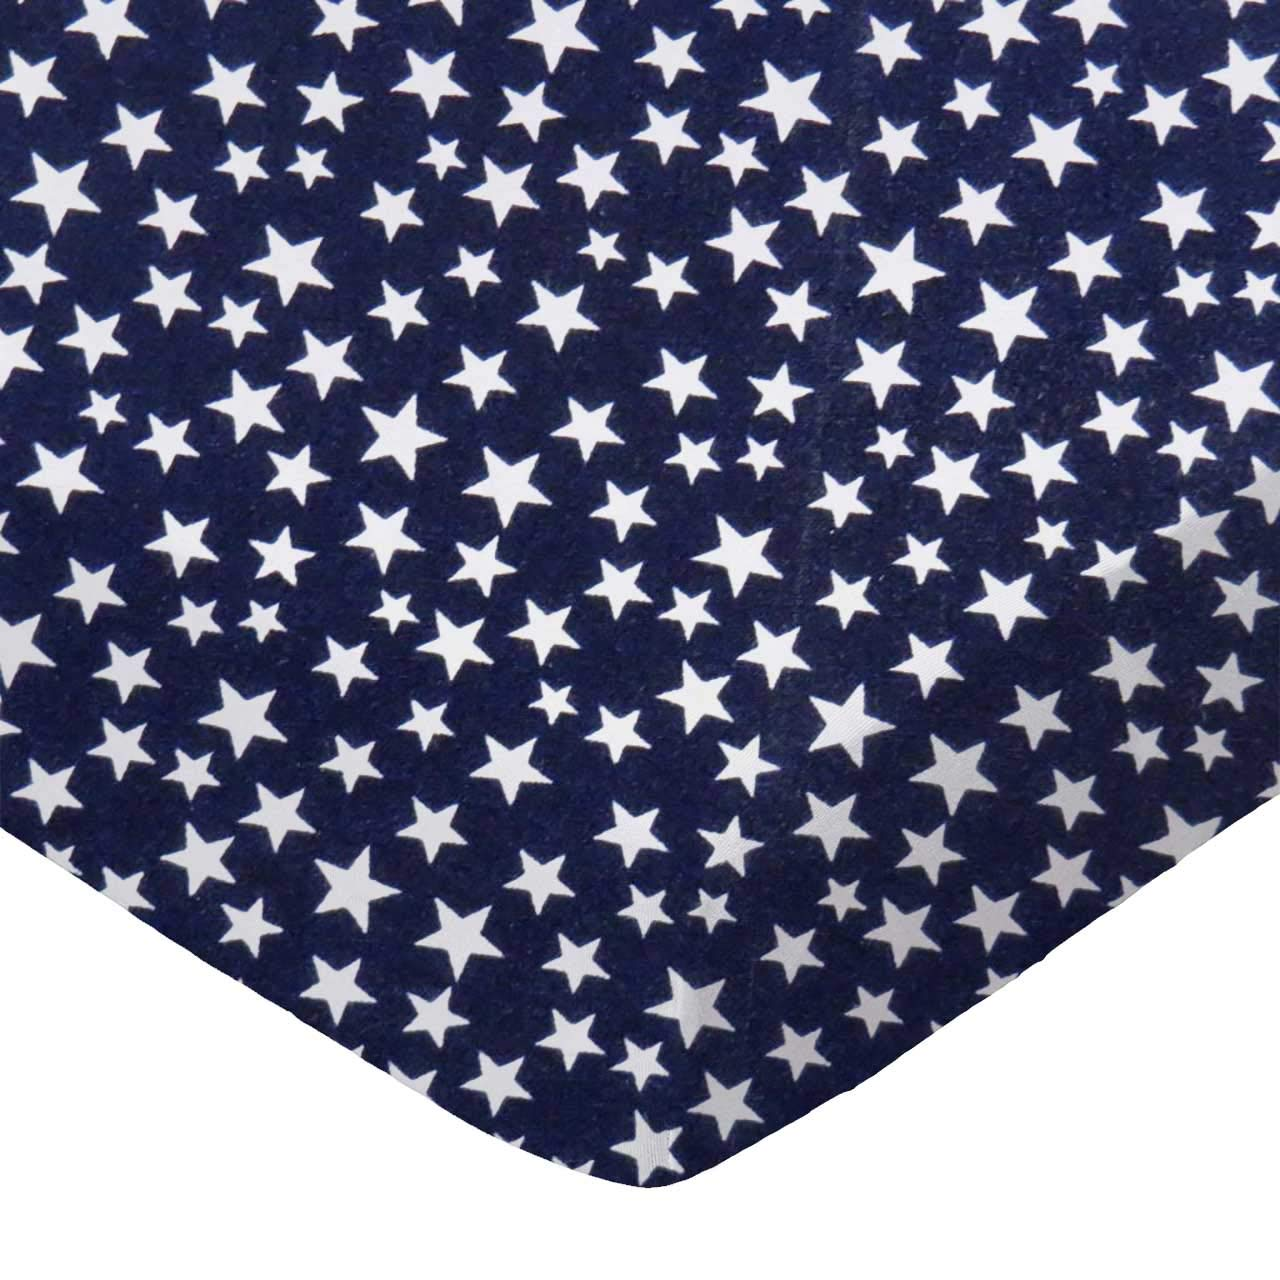 SheetWorld 100% Cotton Percale Fitted Crib Toddler Sheet 28 x 52, Primary Stars White On Navy Woven, Made in USA by SHEETWORLD.COM